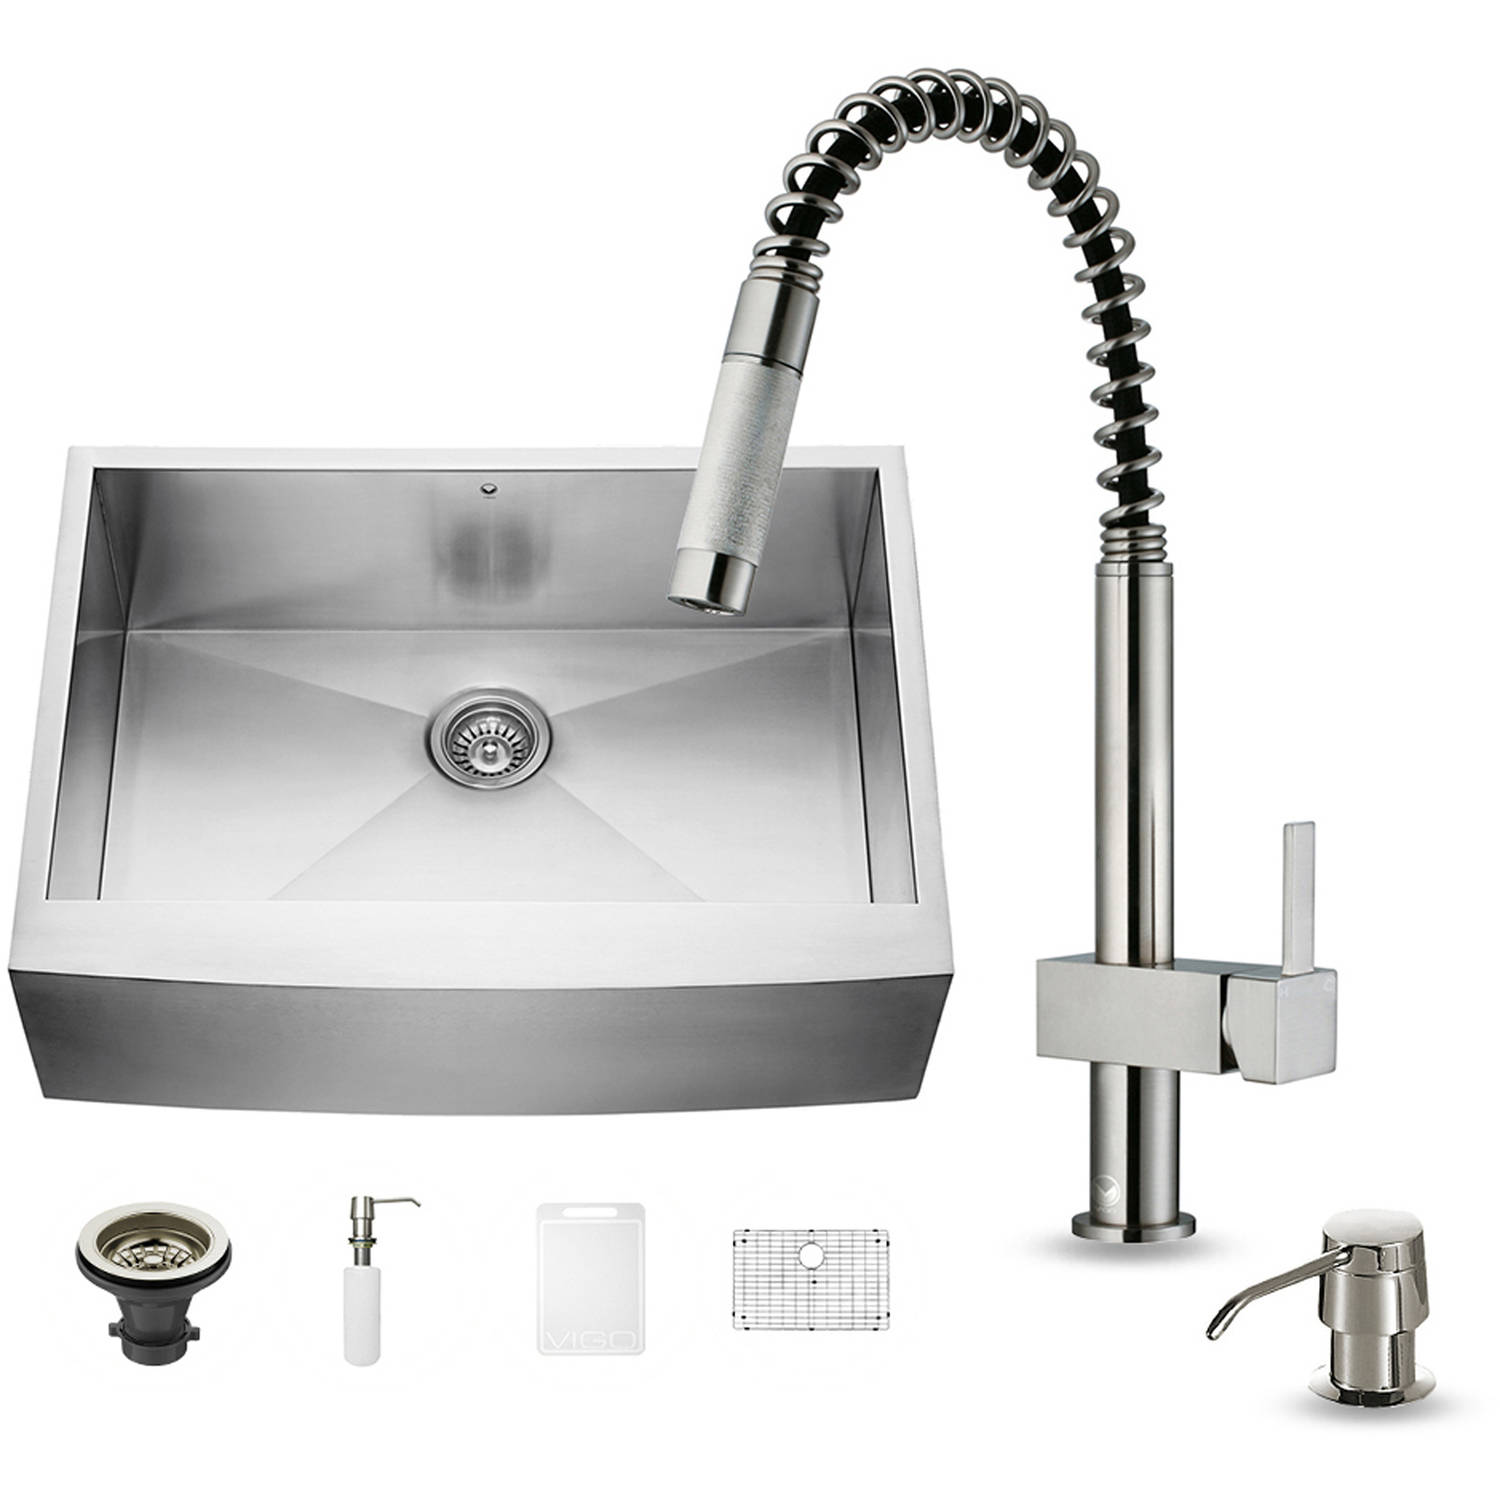 "Vigo All-in-One 30"" Farmhouse Stainless Steel Kitchen Sink and Faucet Set"